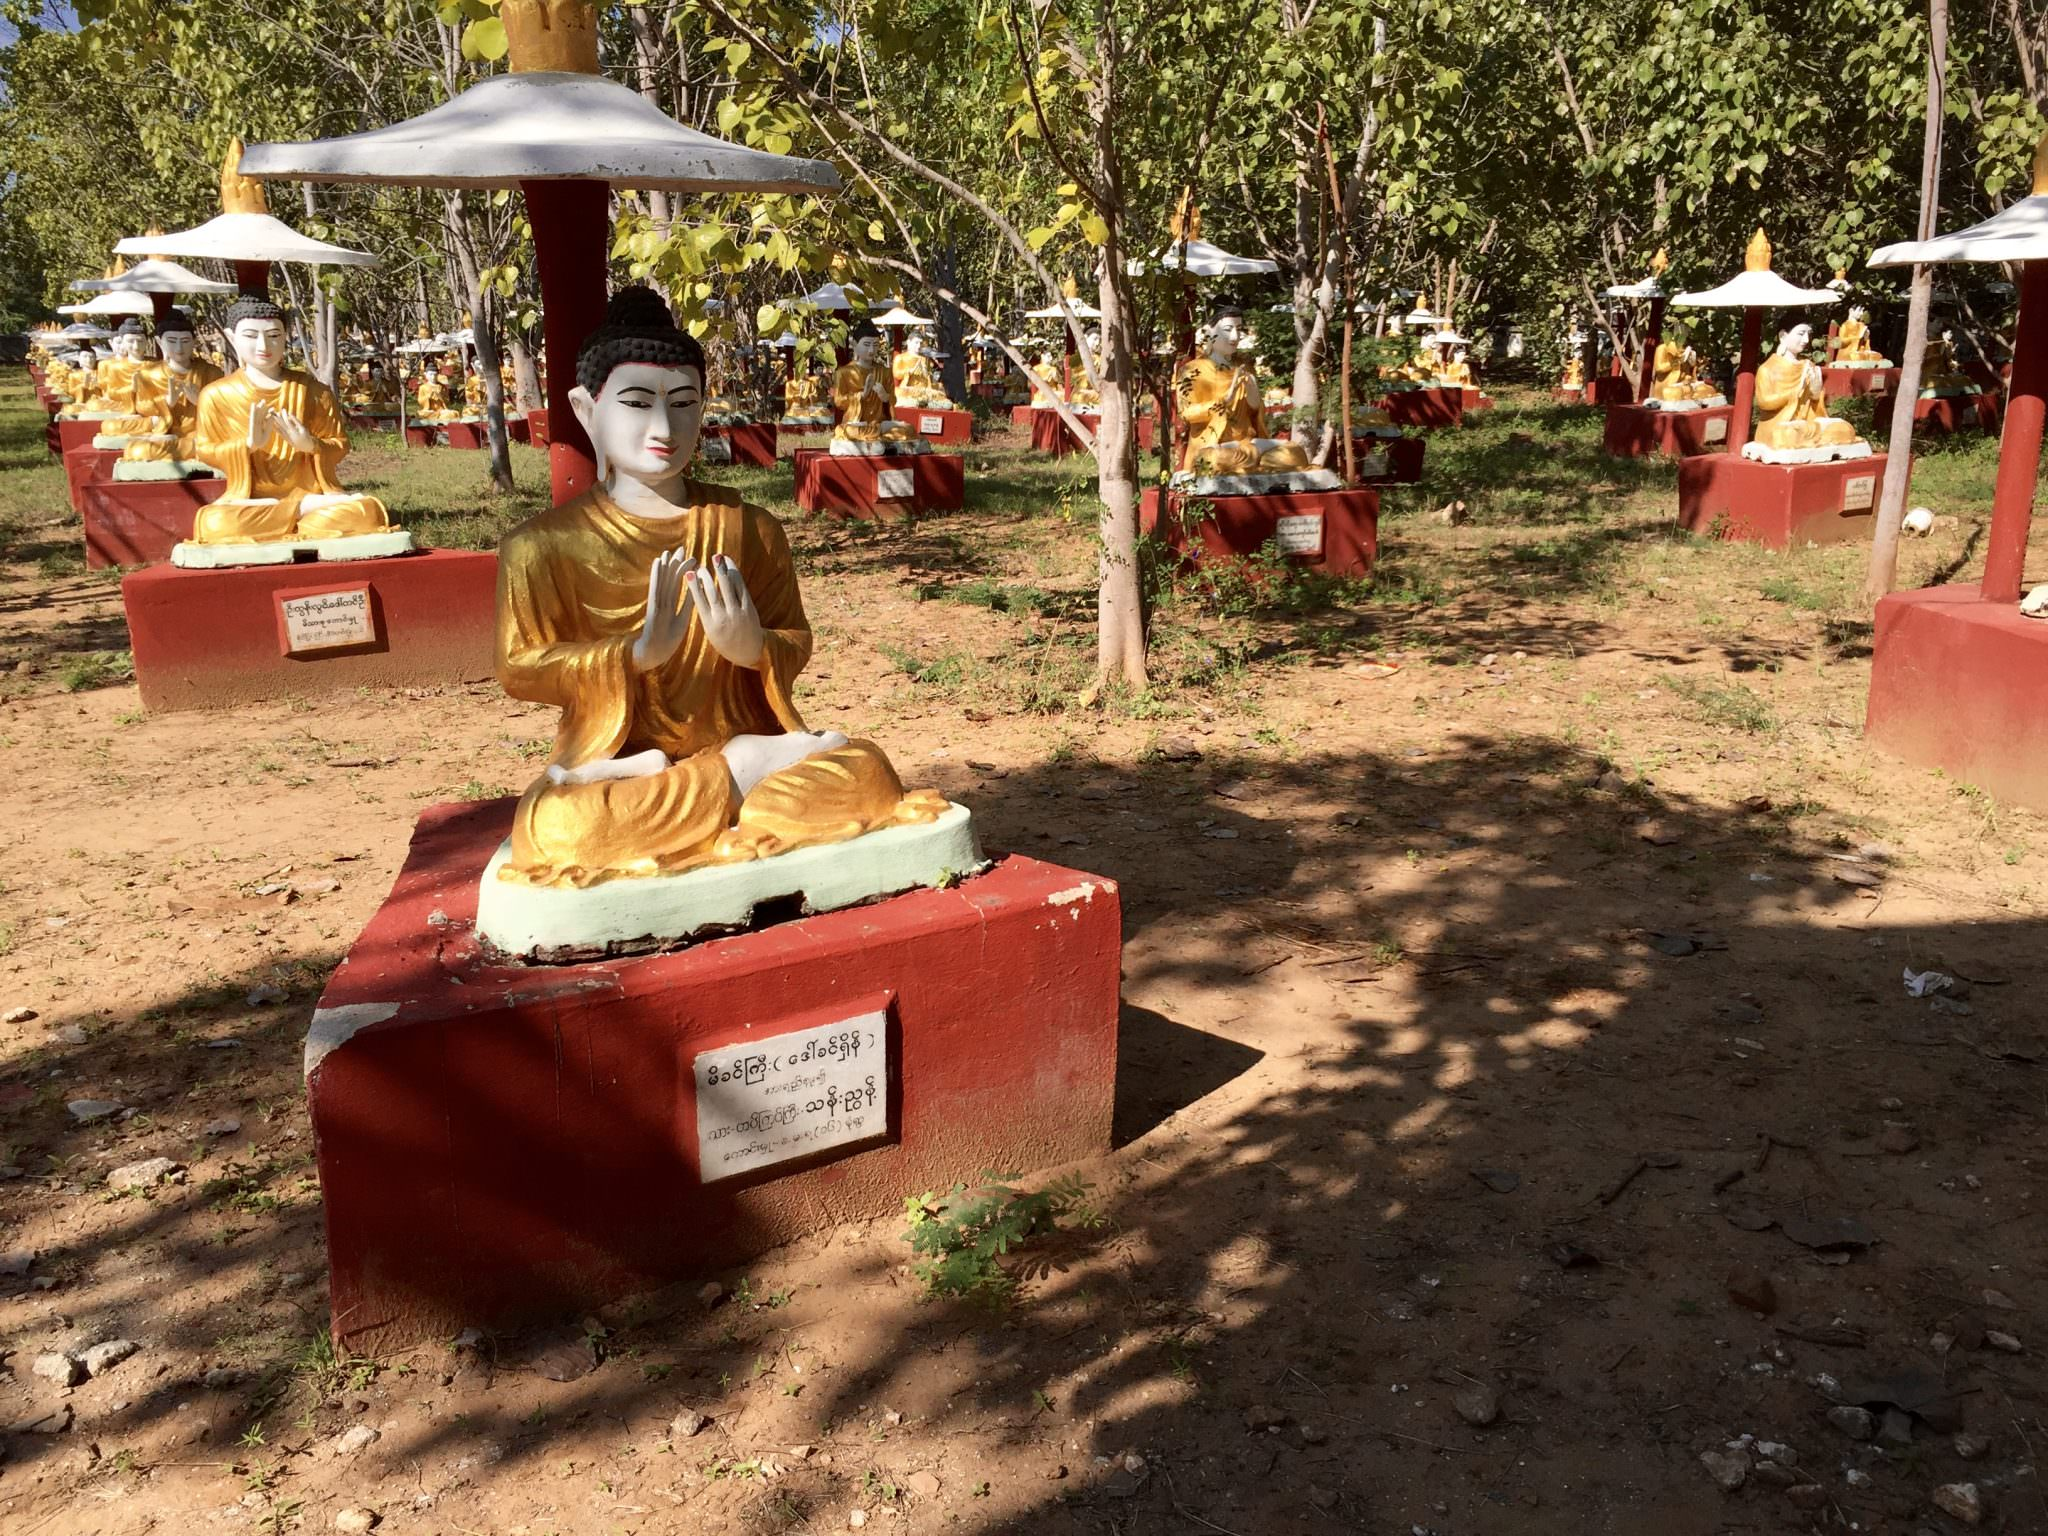 More than 10,000 Buddhas stand guard over the sacred banyan trees. © 2015 Gail Jessen